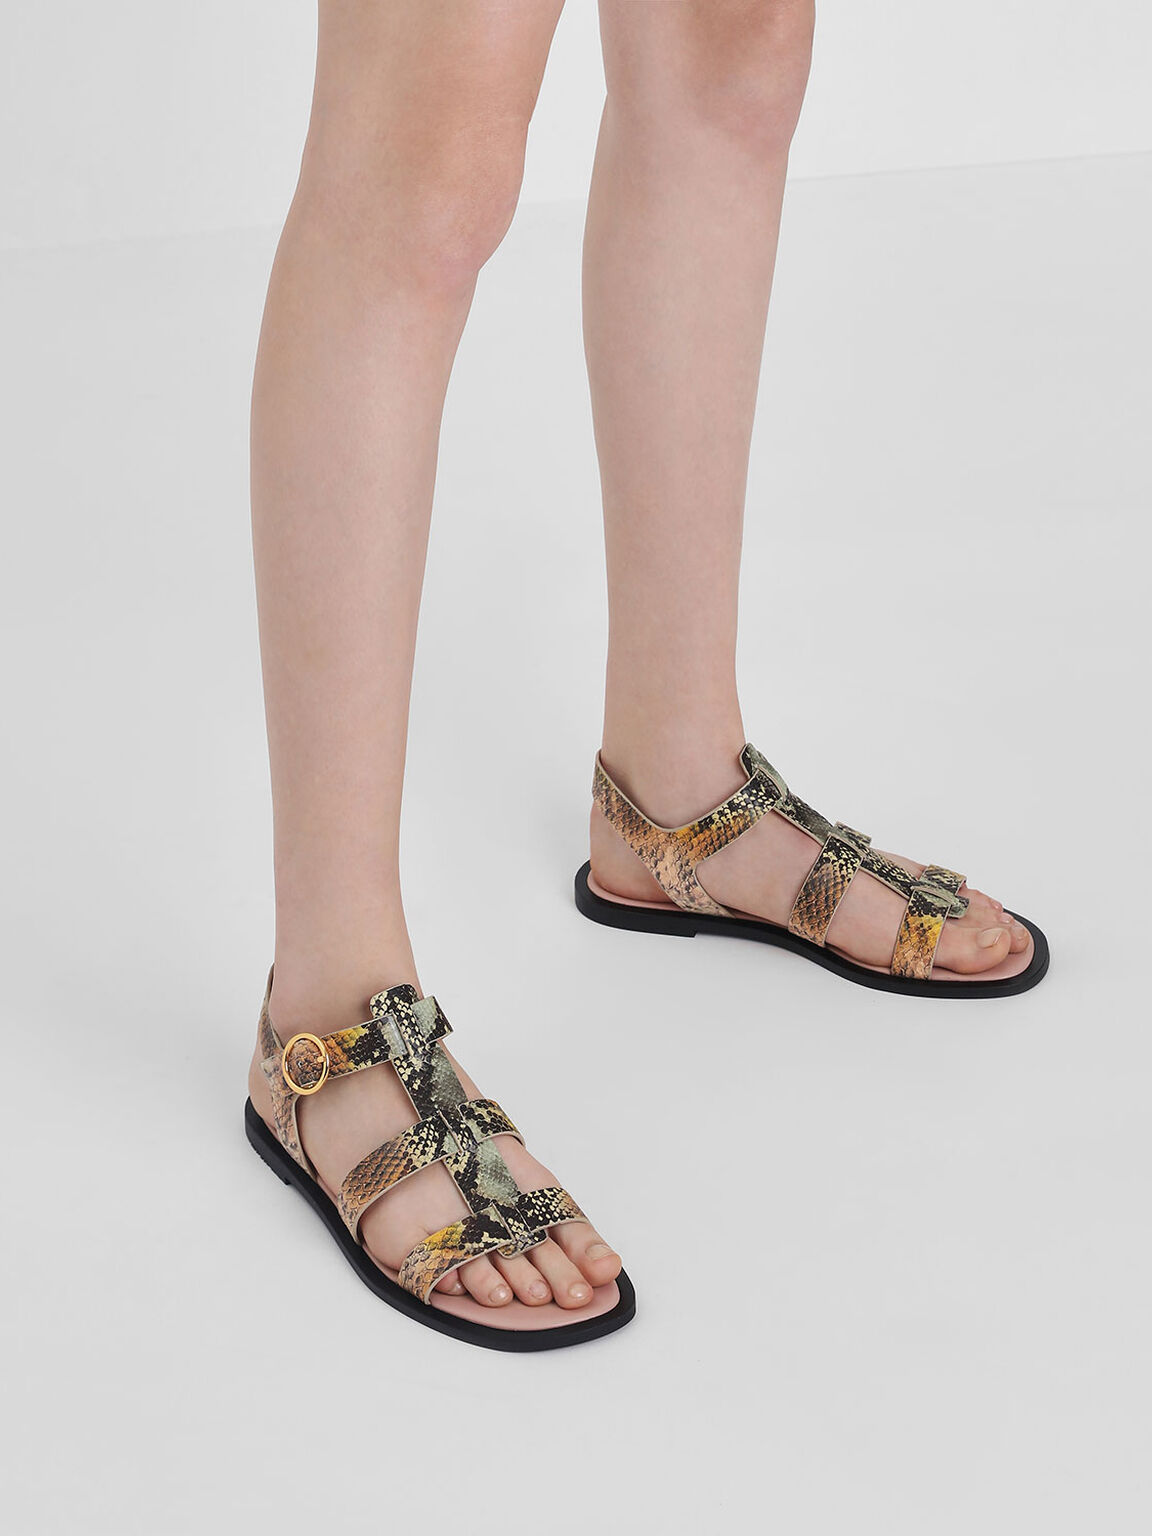 Snake Print Strappy Sandals, Multi, hi-res